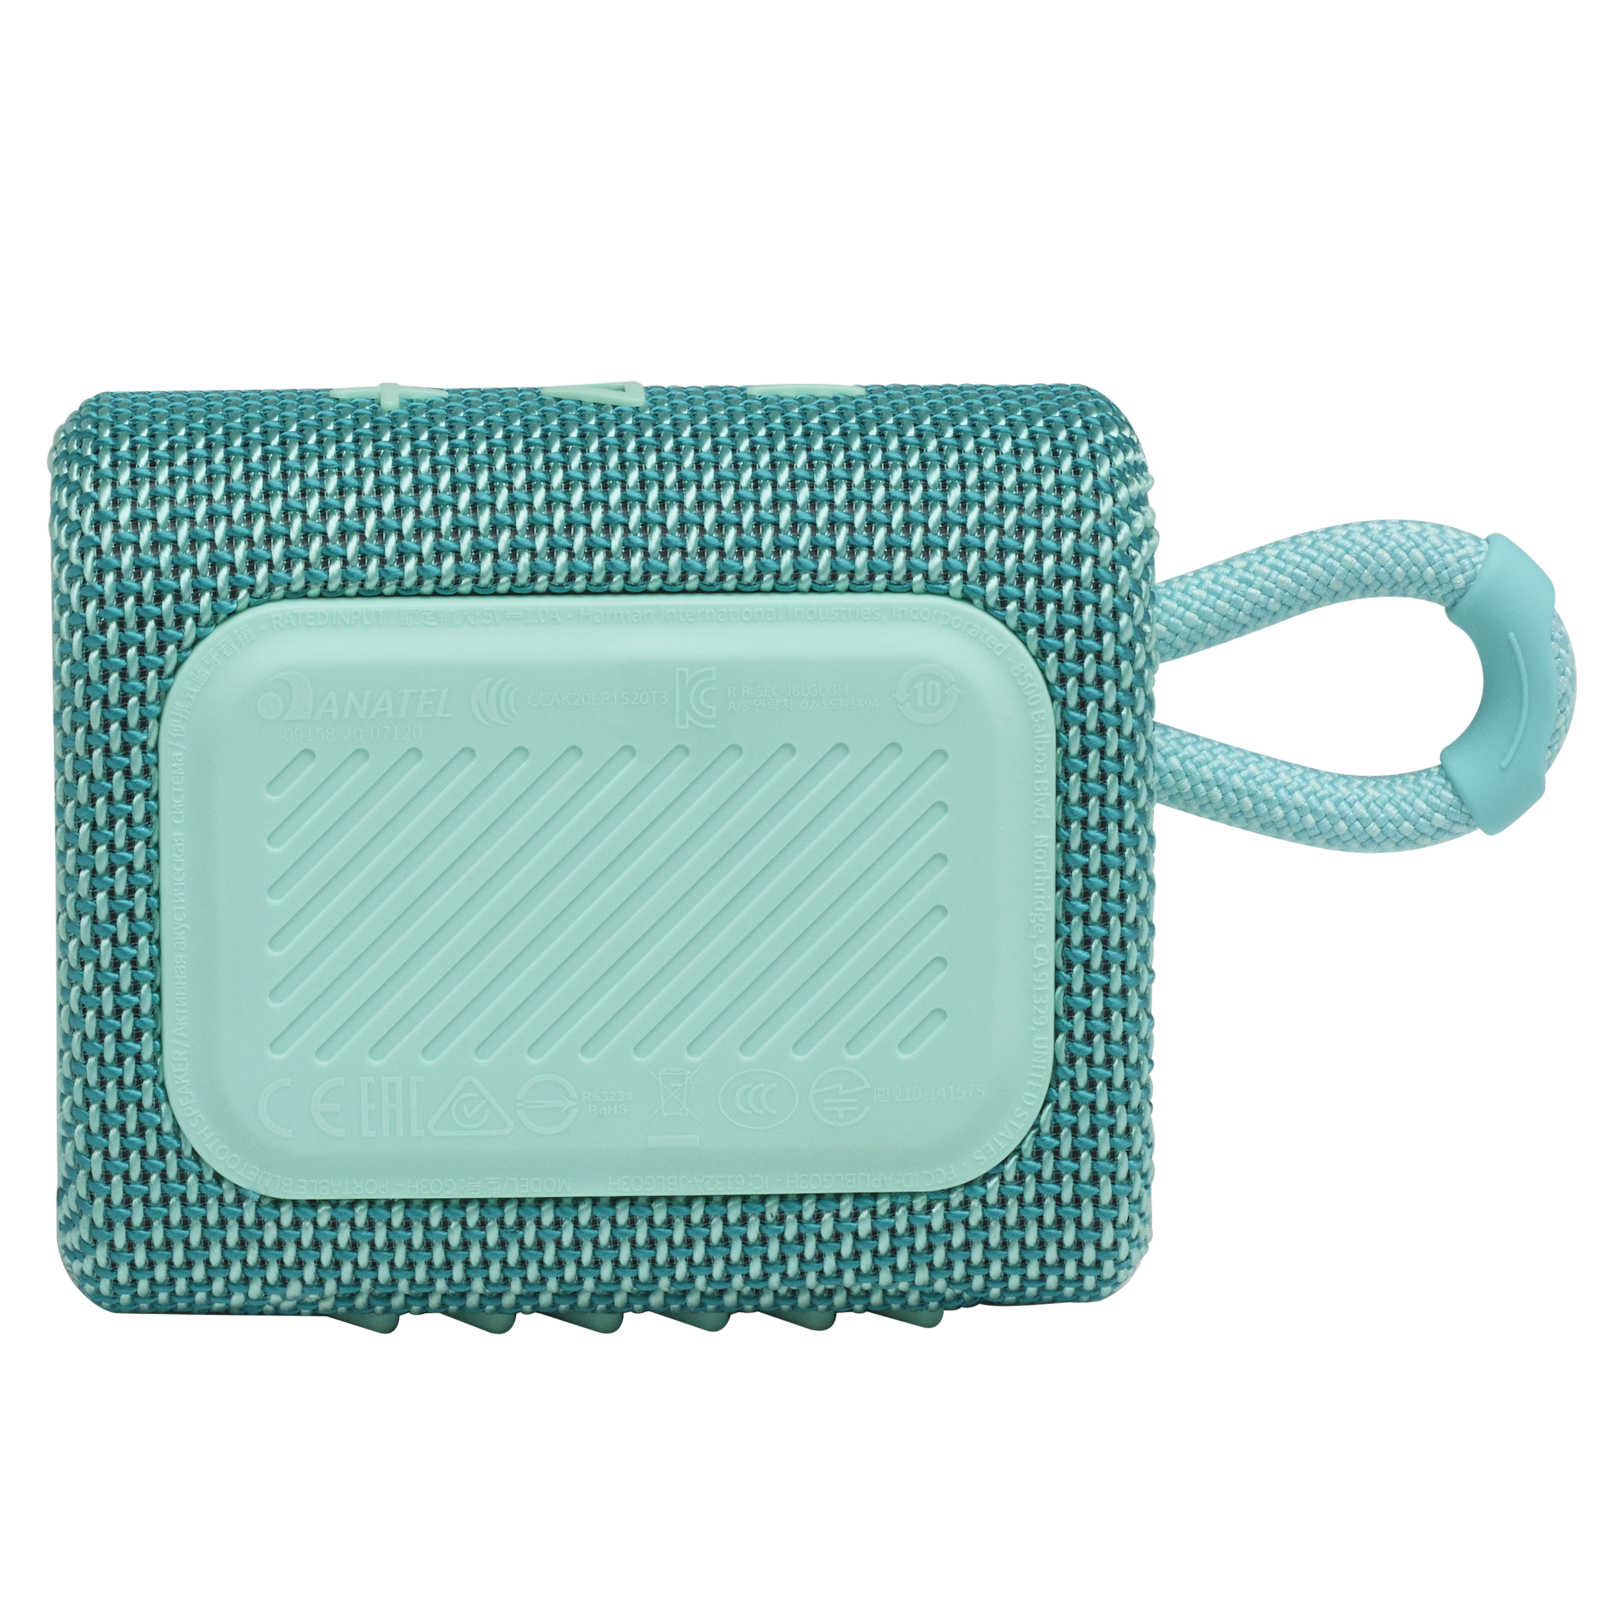 JBL GO 3 - Teal - Portable Waterproof Speaker - Back